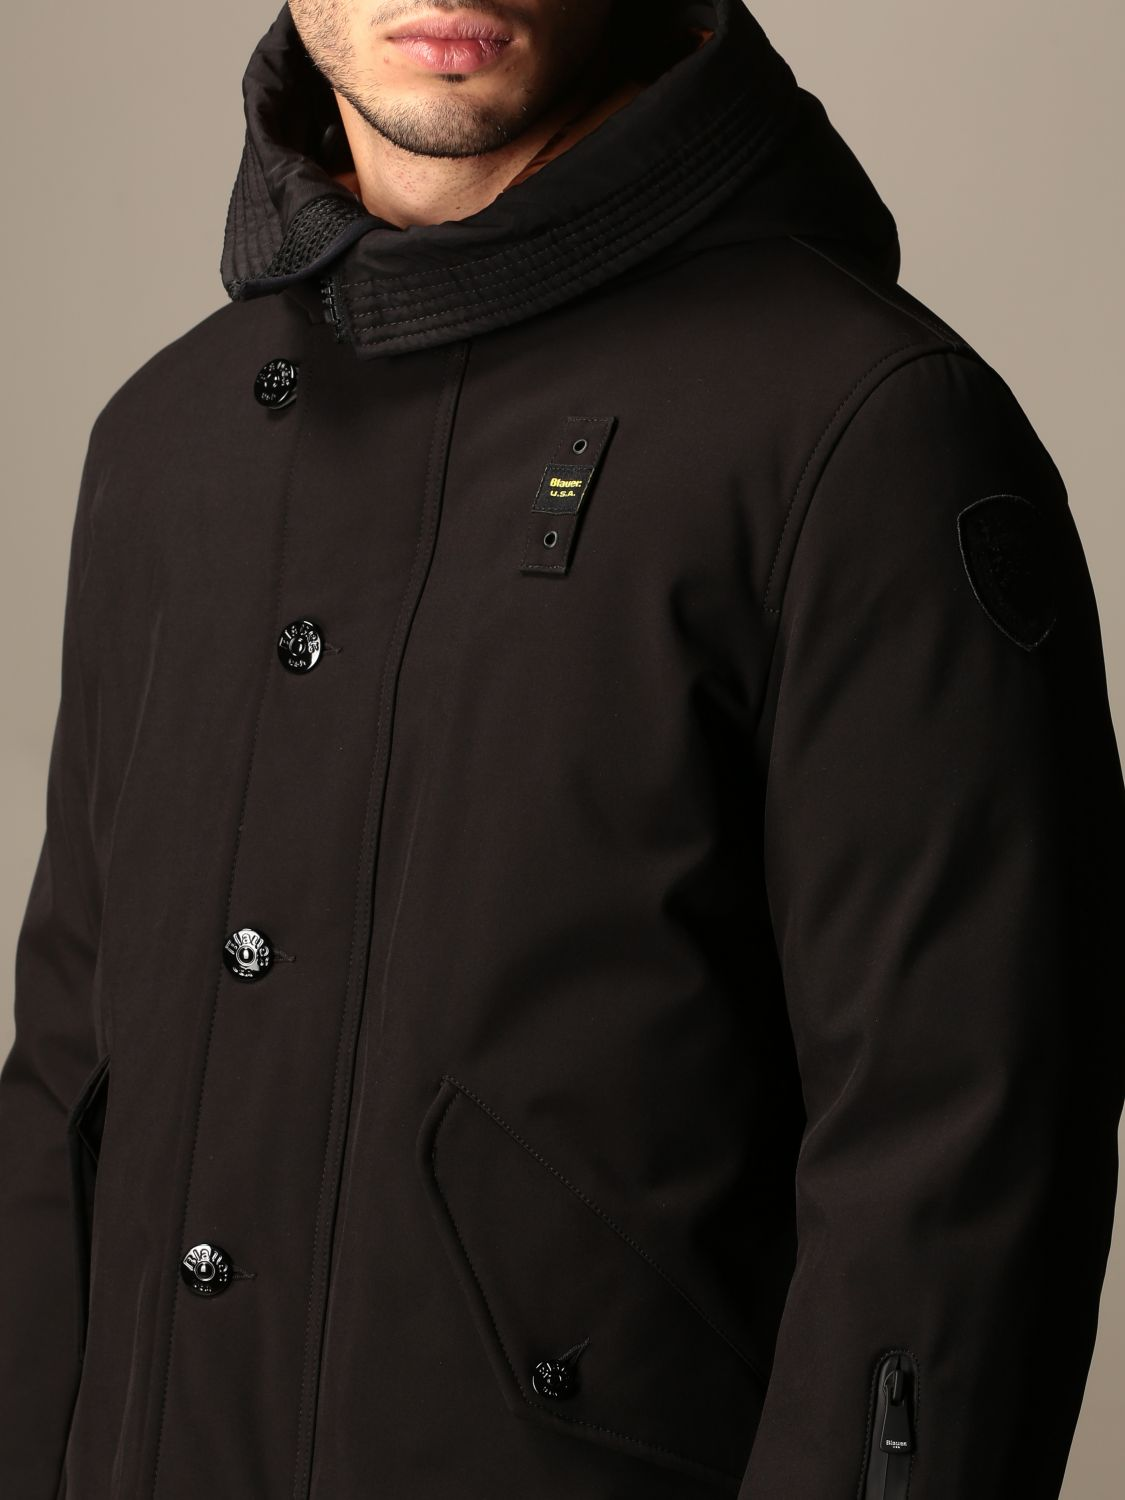 Jacket Blauer: Coat men Blauer black 4